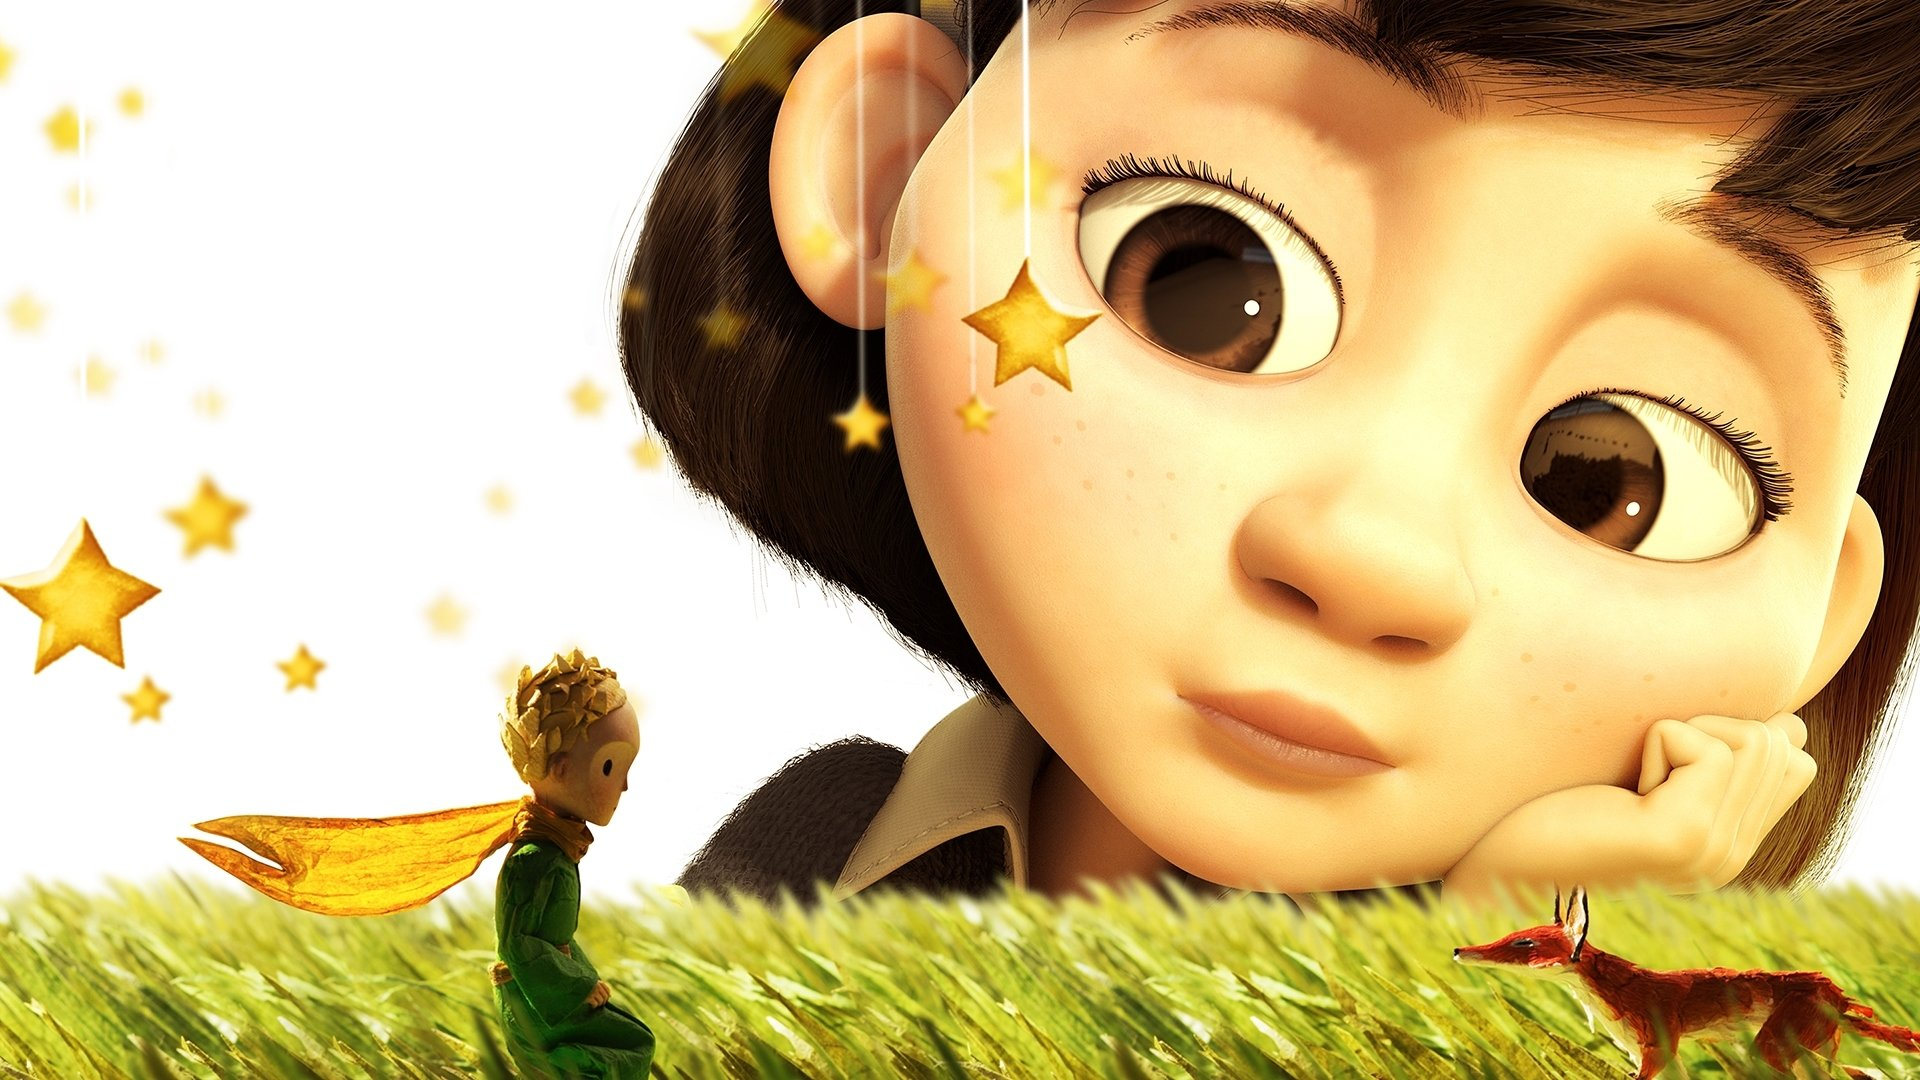 55 The Little Prince Hd Wallpapers Background Images Wallpaper